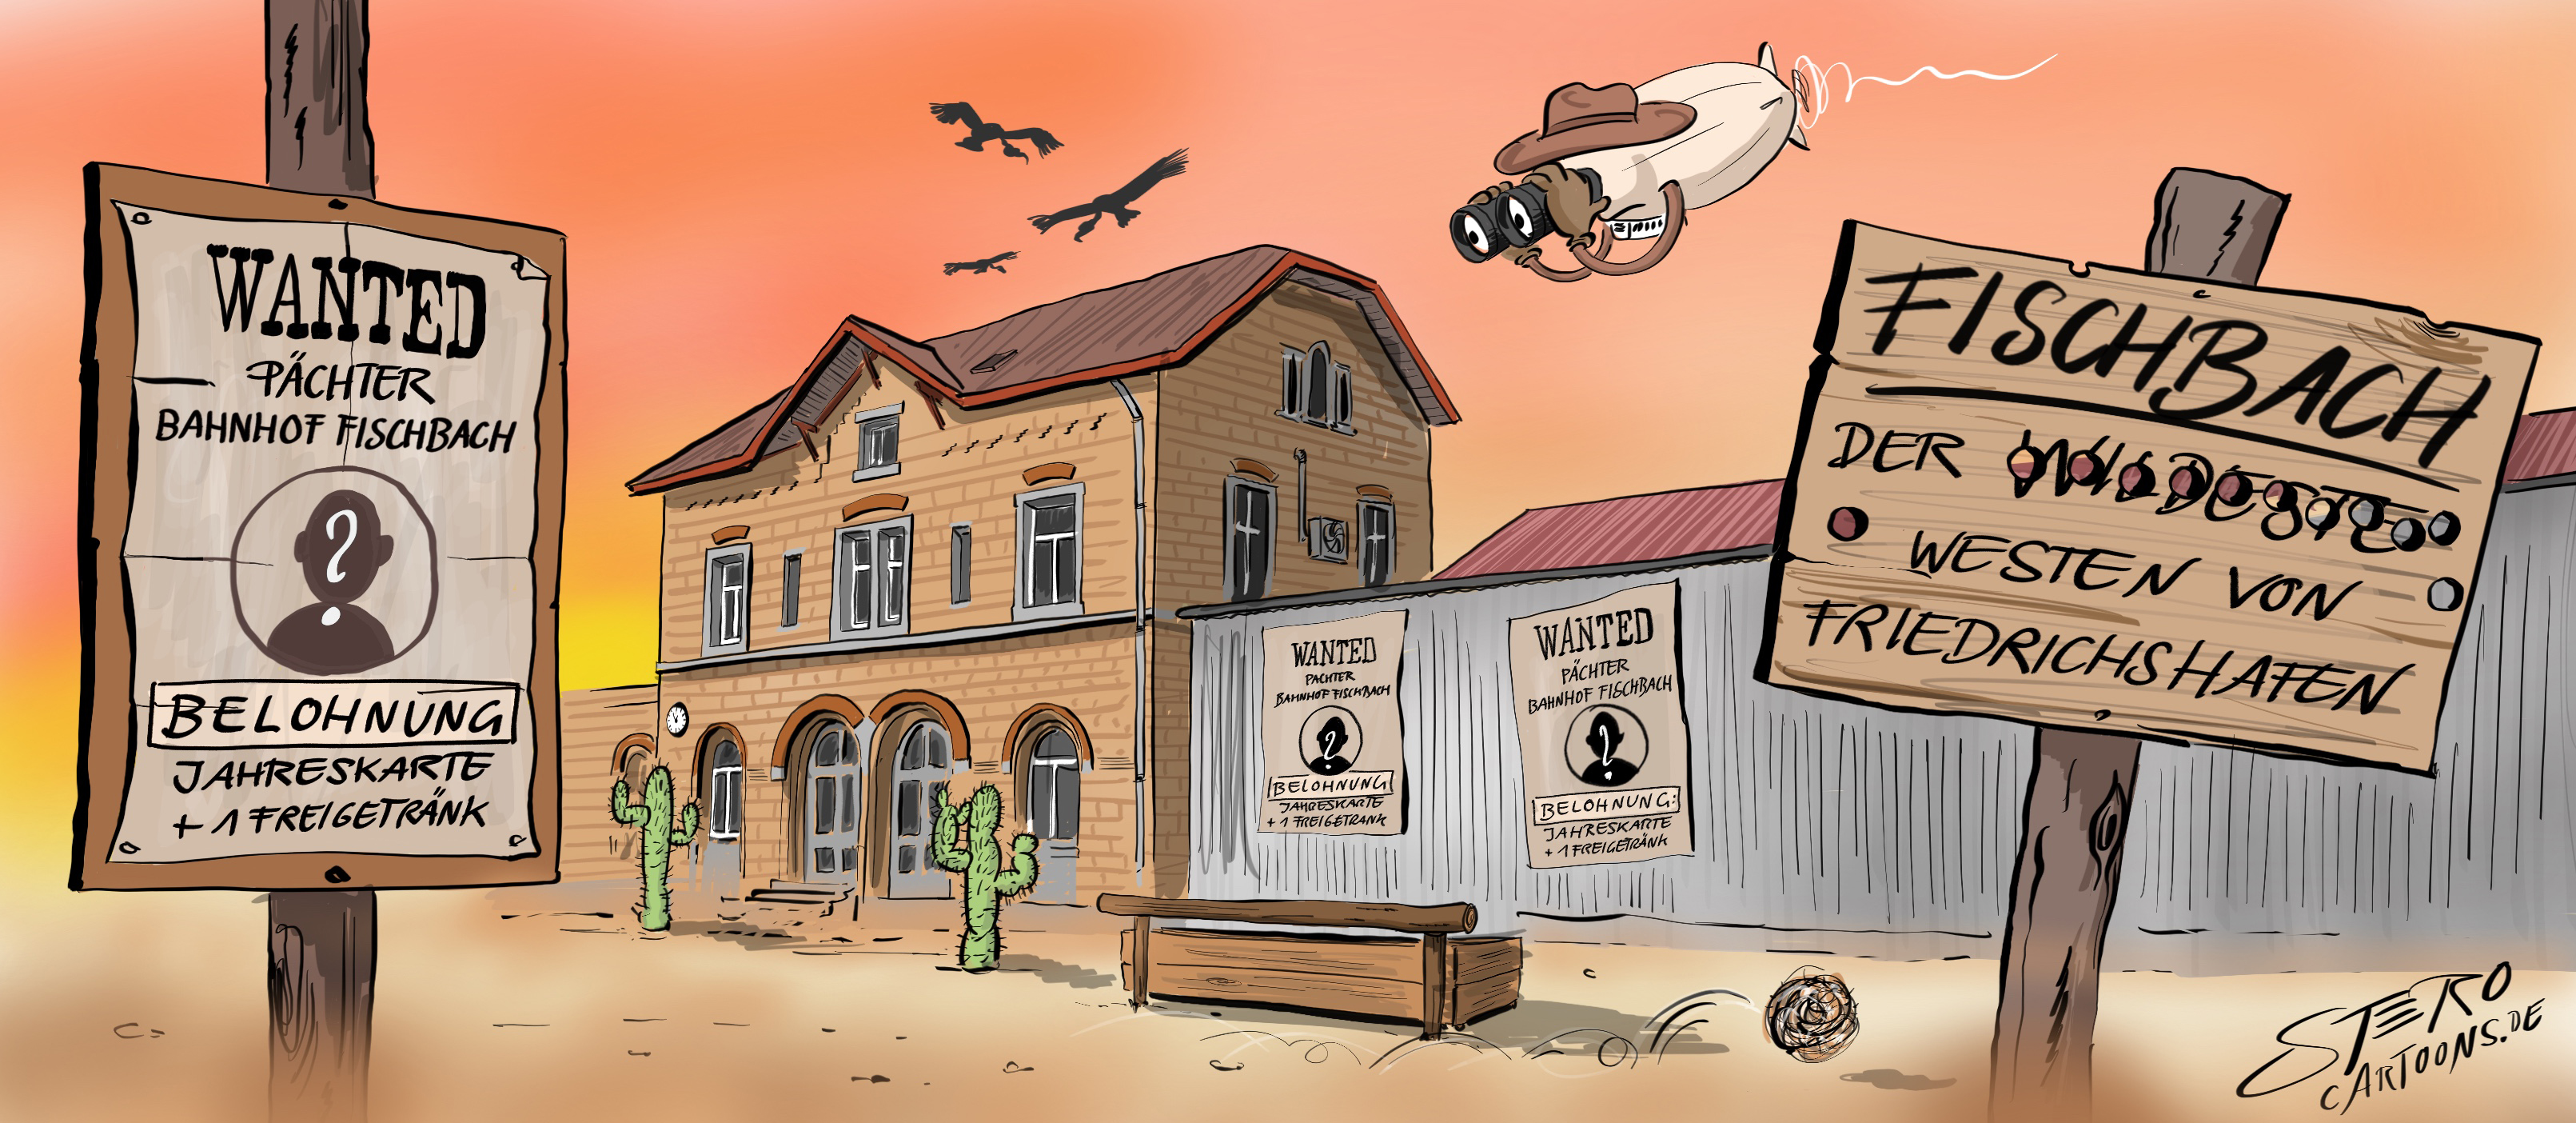 Cartoon-Illustration im WildWestStil